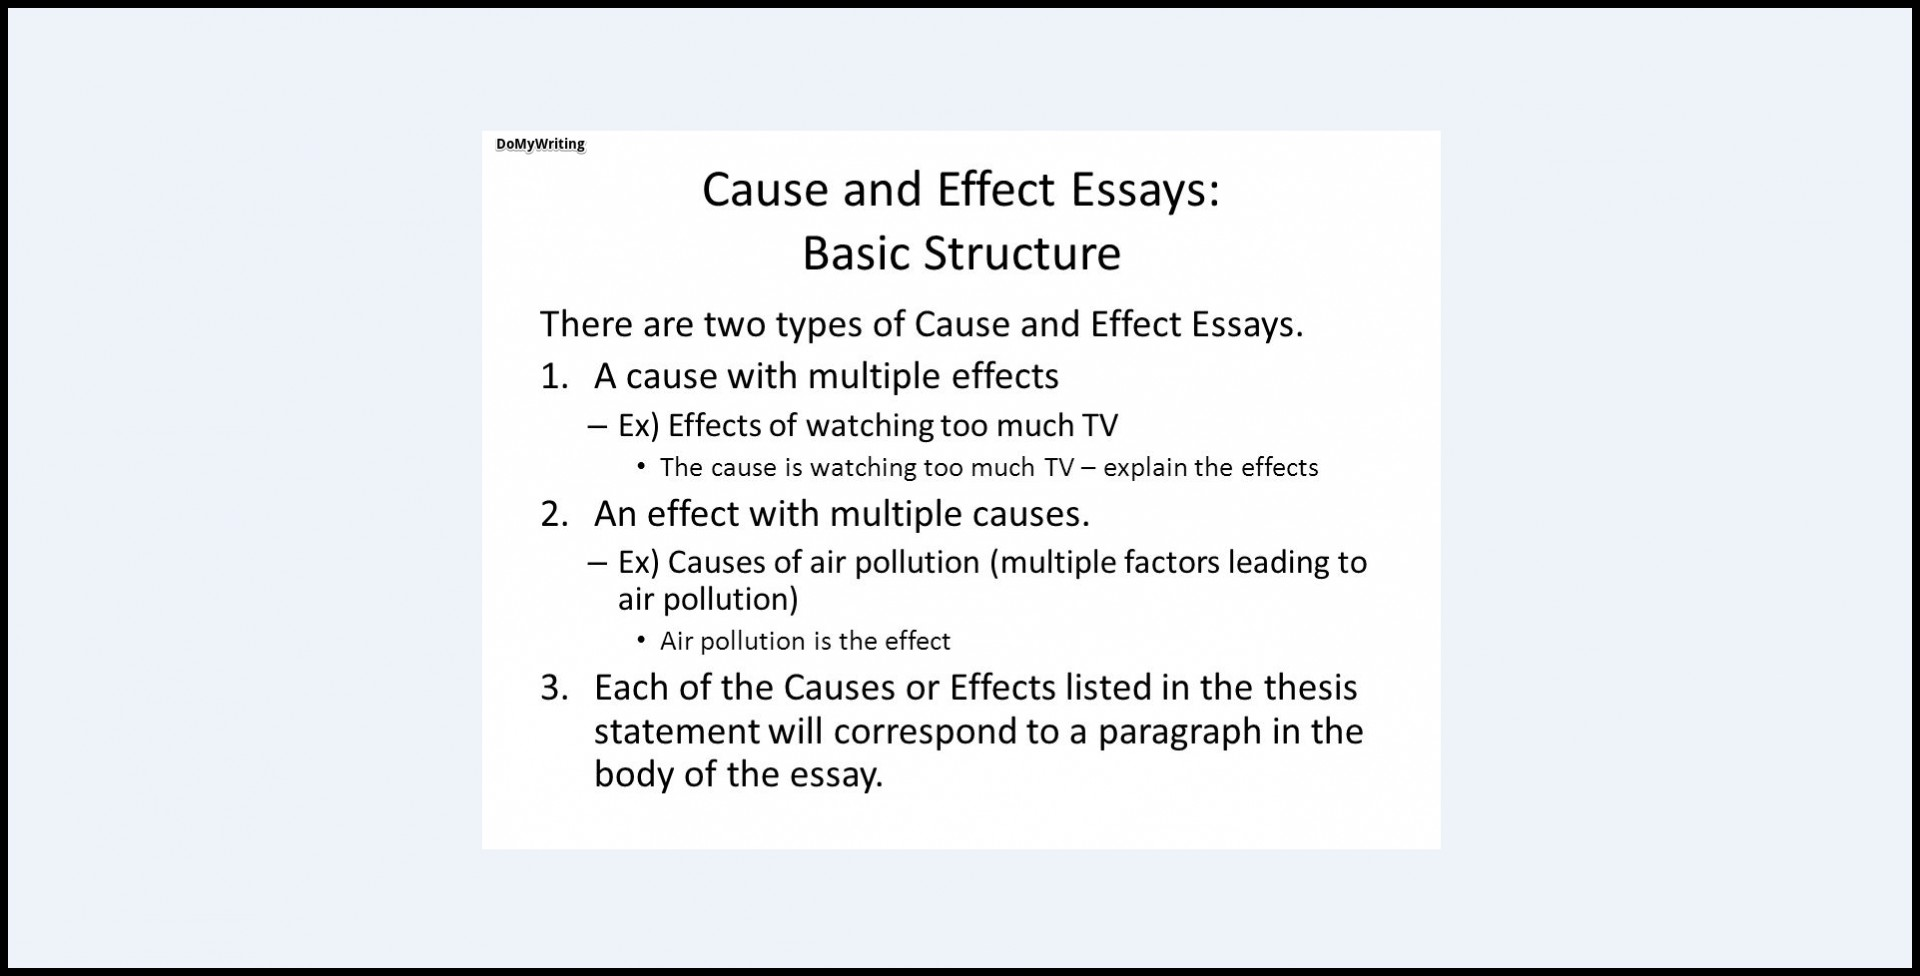 013 Cause And Effect Essay Topics Structure Dreaded Smoking Outline For 6th Graders Format 1920